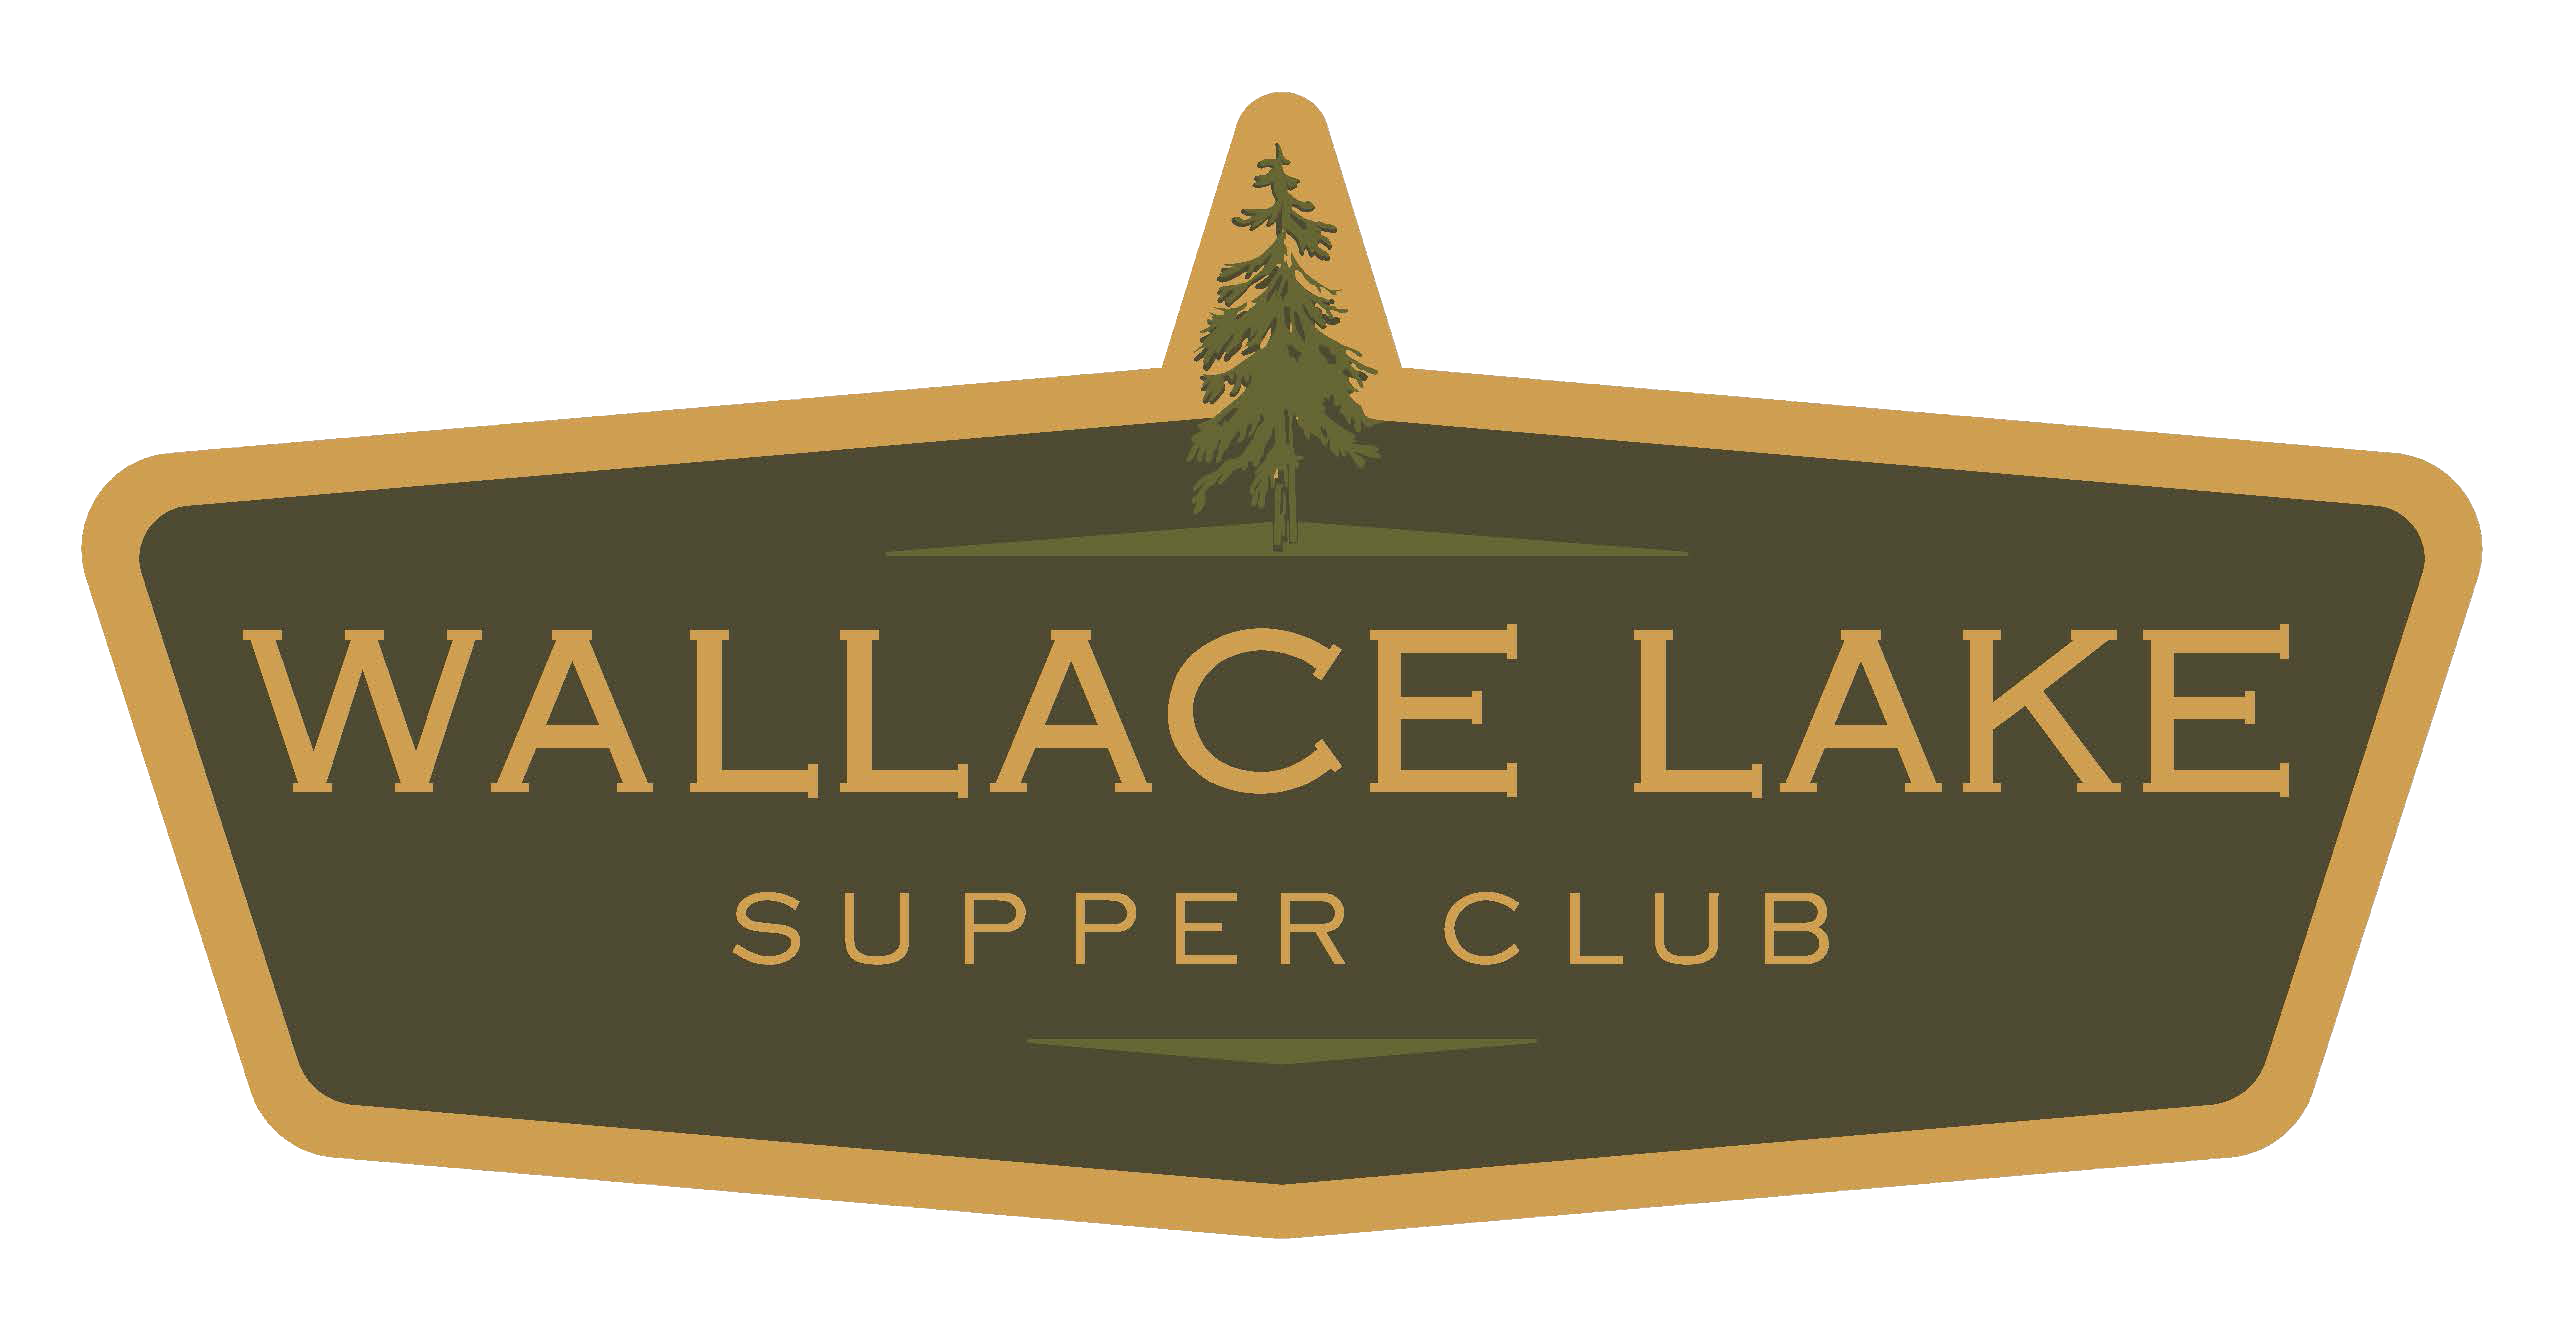 Welcome to Wallace lake Supper Club